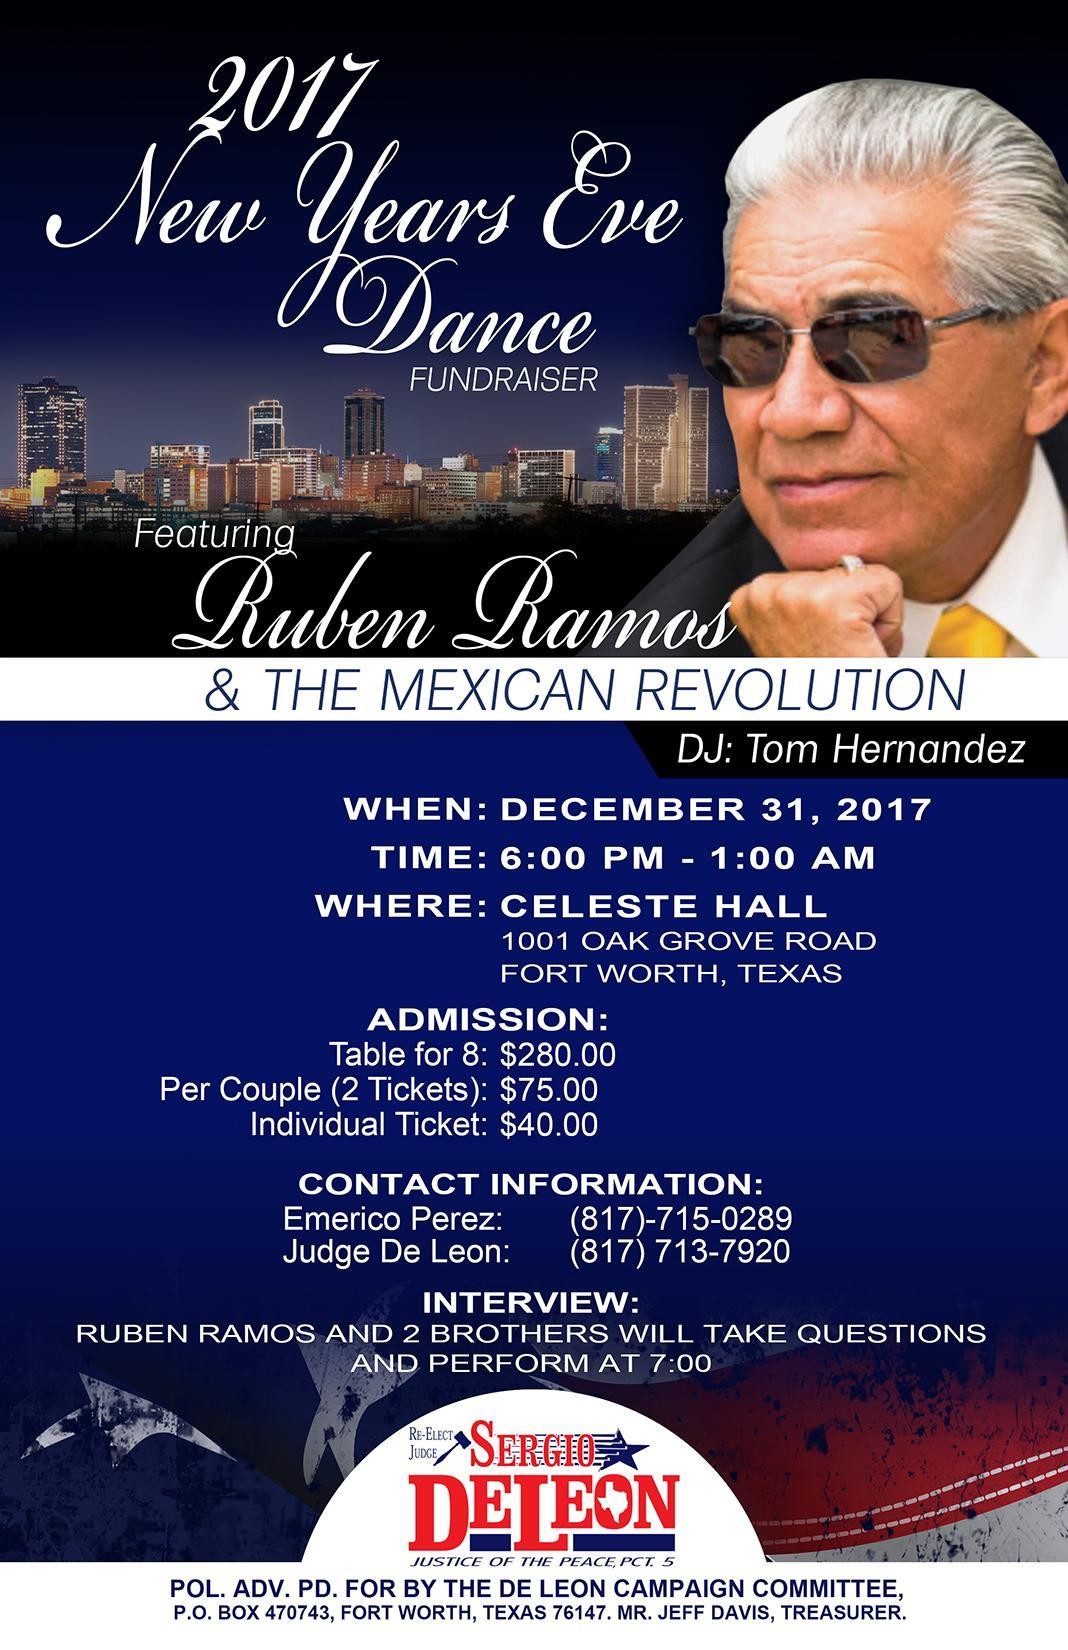 New Year's Eve Ruben Ramos Dance Fundraiser Tickets in Fort